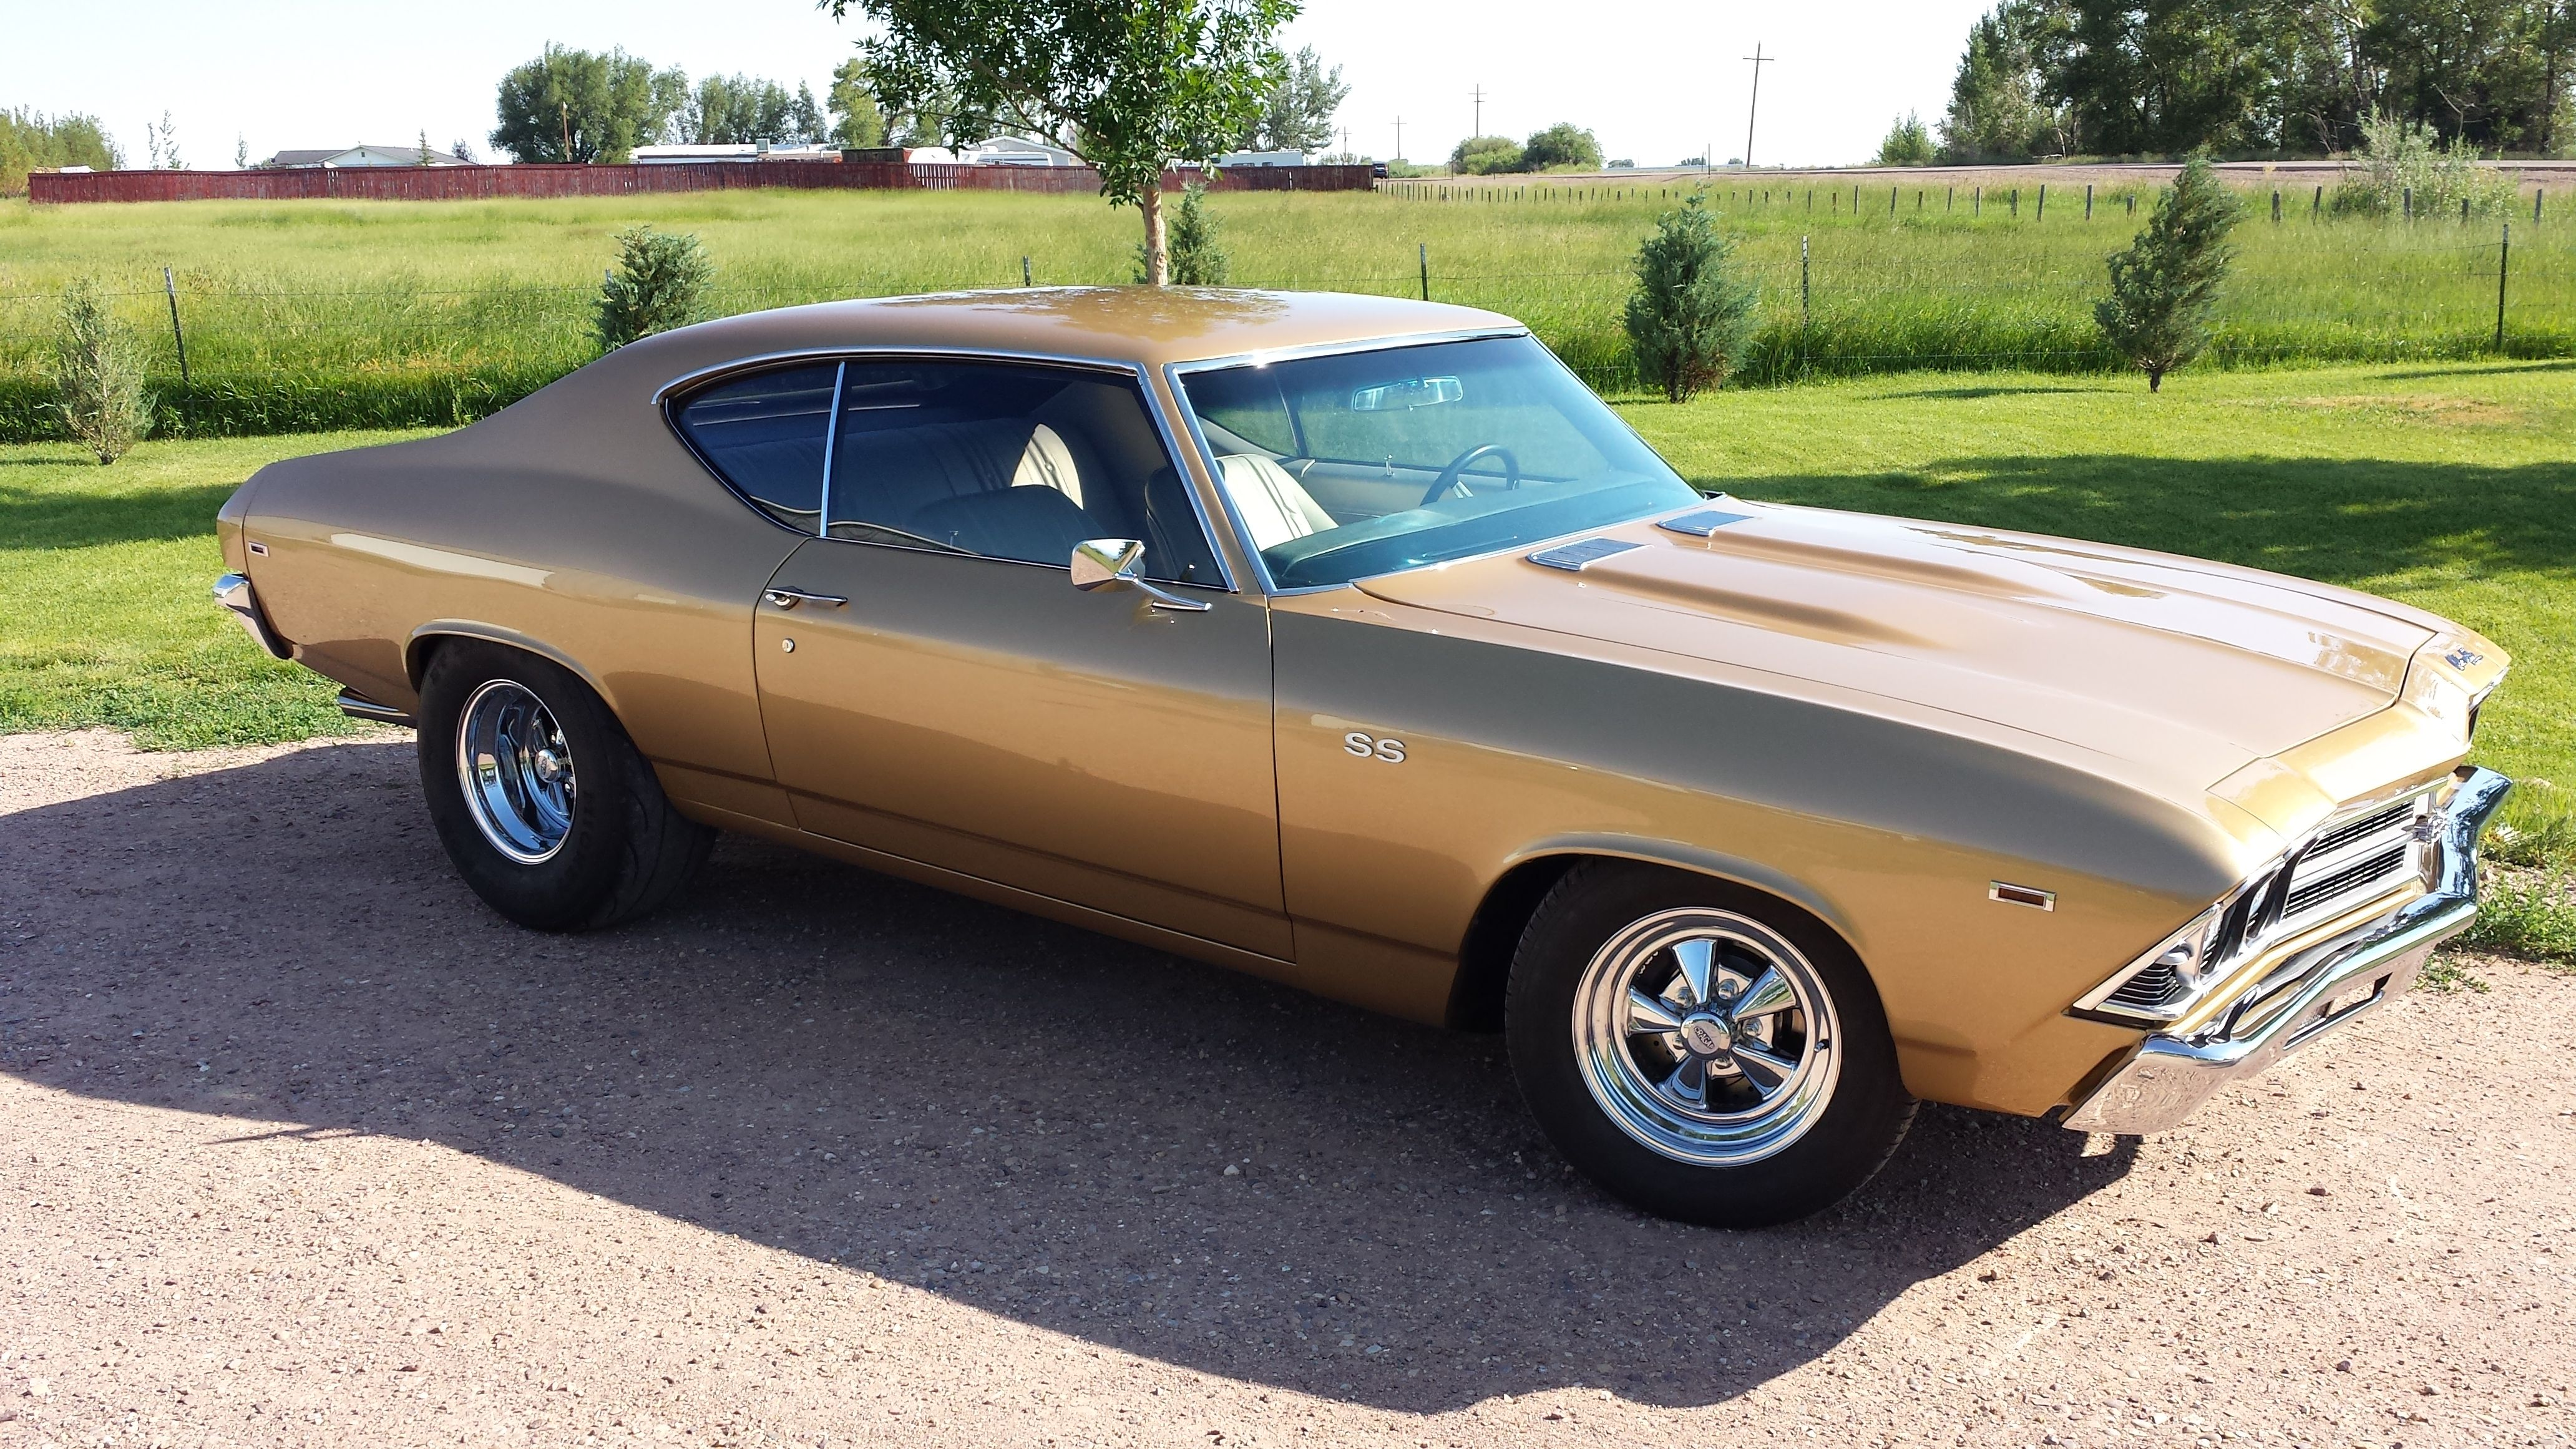 readers ride casey burns killer chevelle casey found his 69 chevelle in disrepair in an old w s garage after seeing an ad on craigslist i bought the car in a rusted heap in casper wyoming in